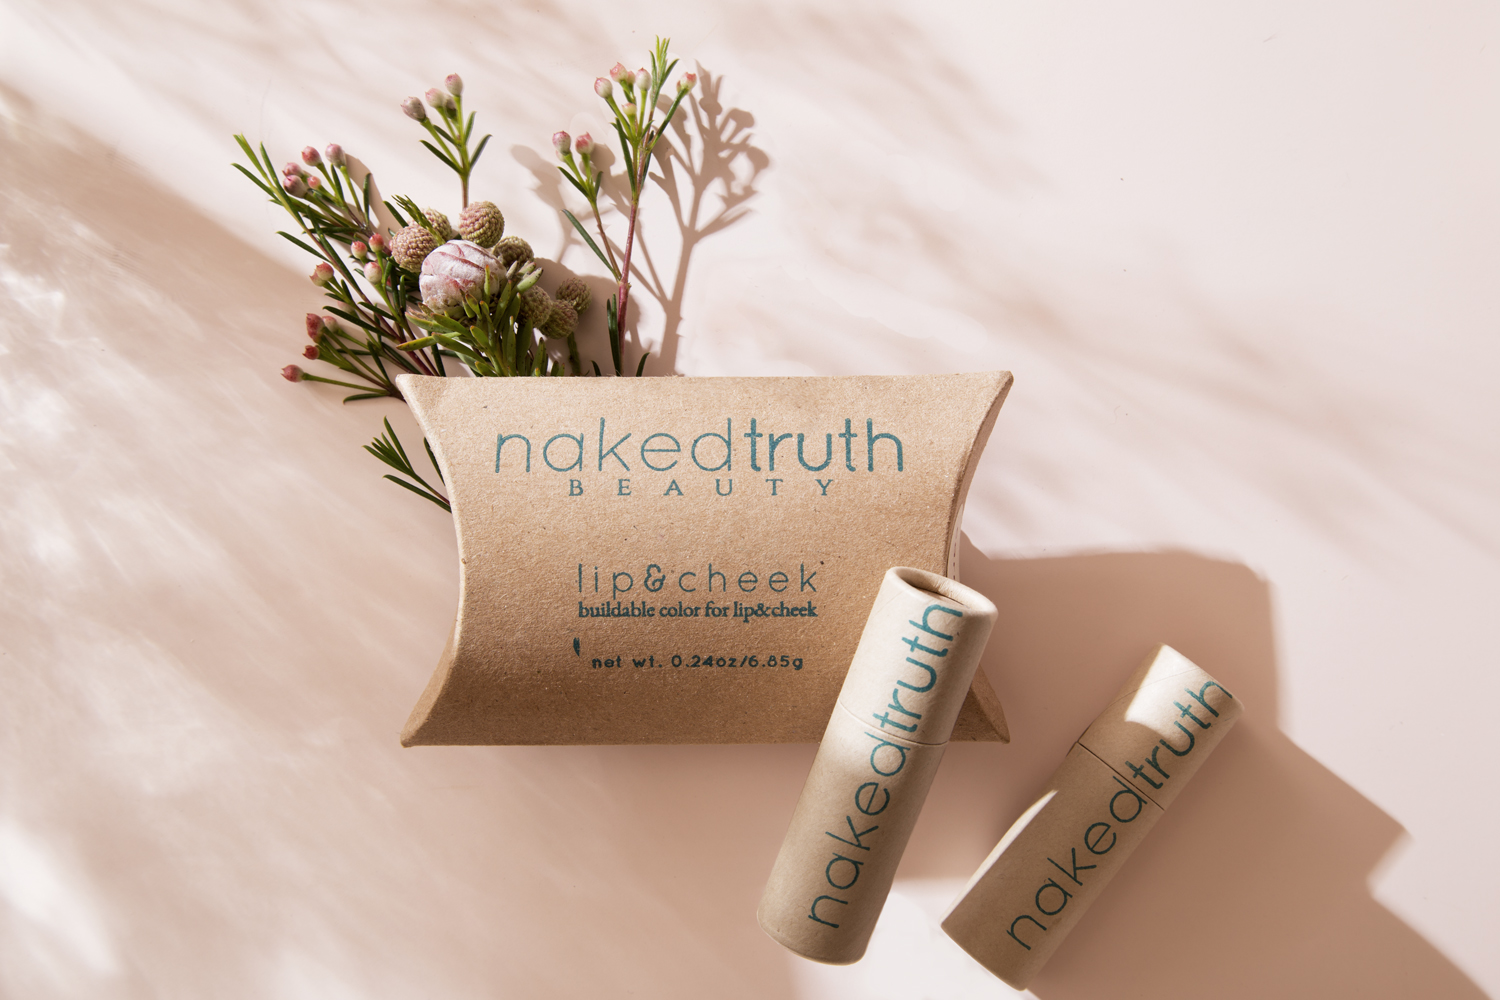 Clean beauty with biodegradable packaging